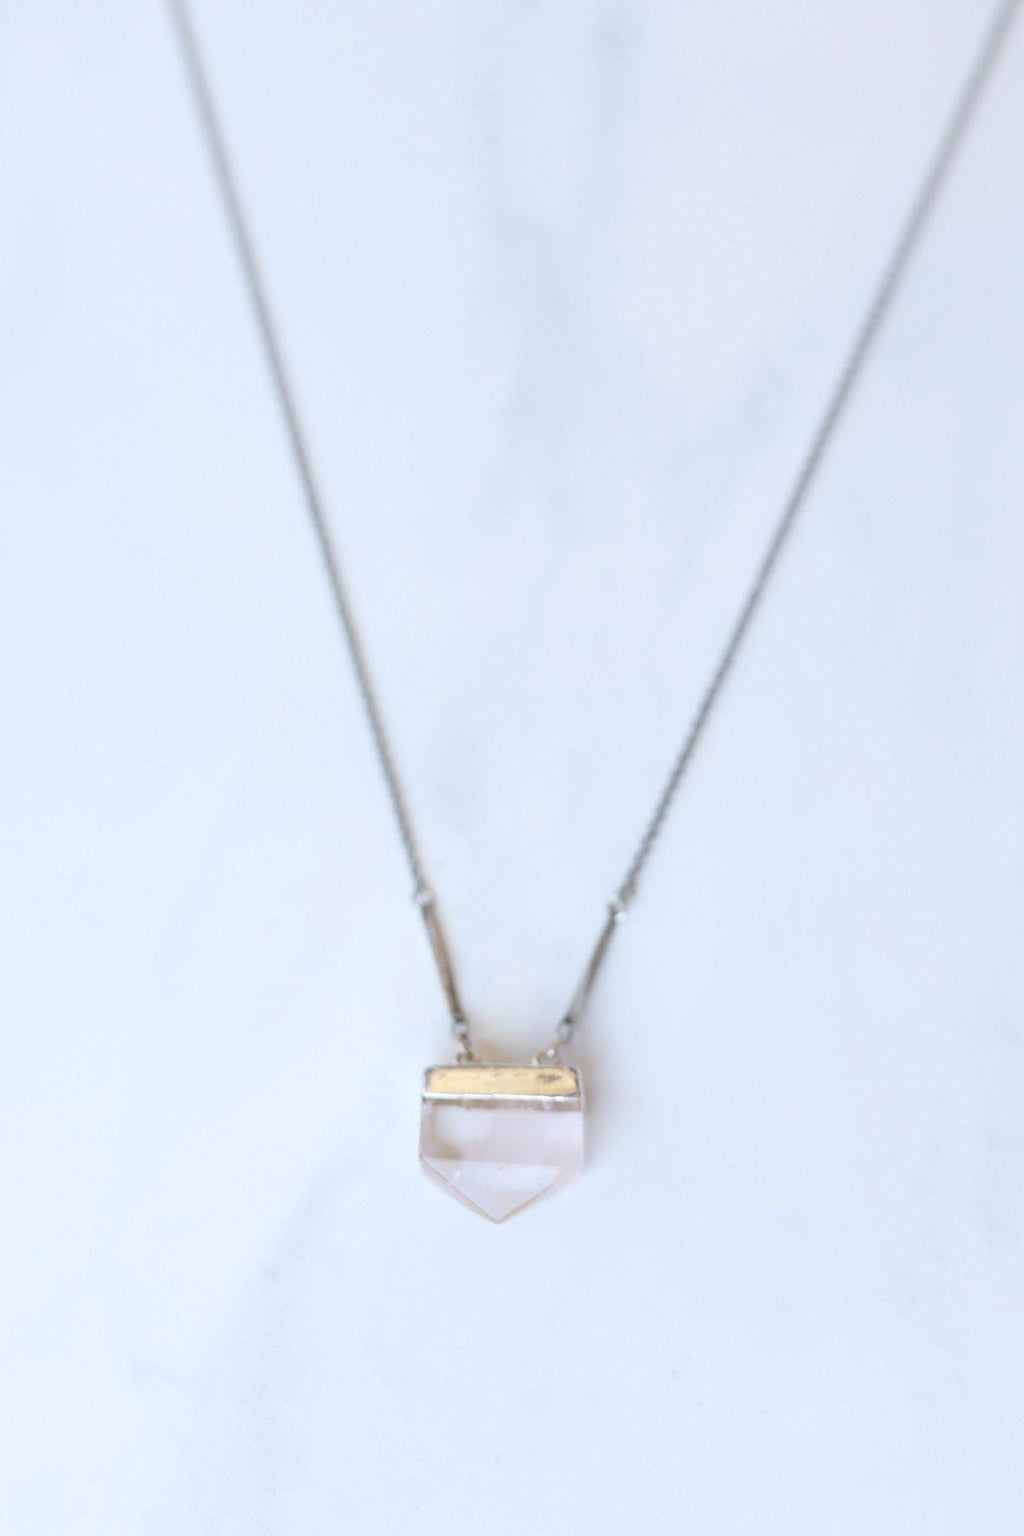 Rose Quartz Chevron Necklace - Gallery 512 Boutique